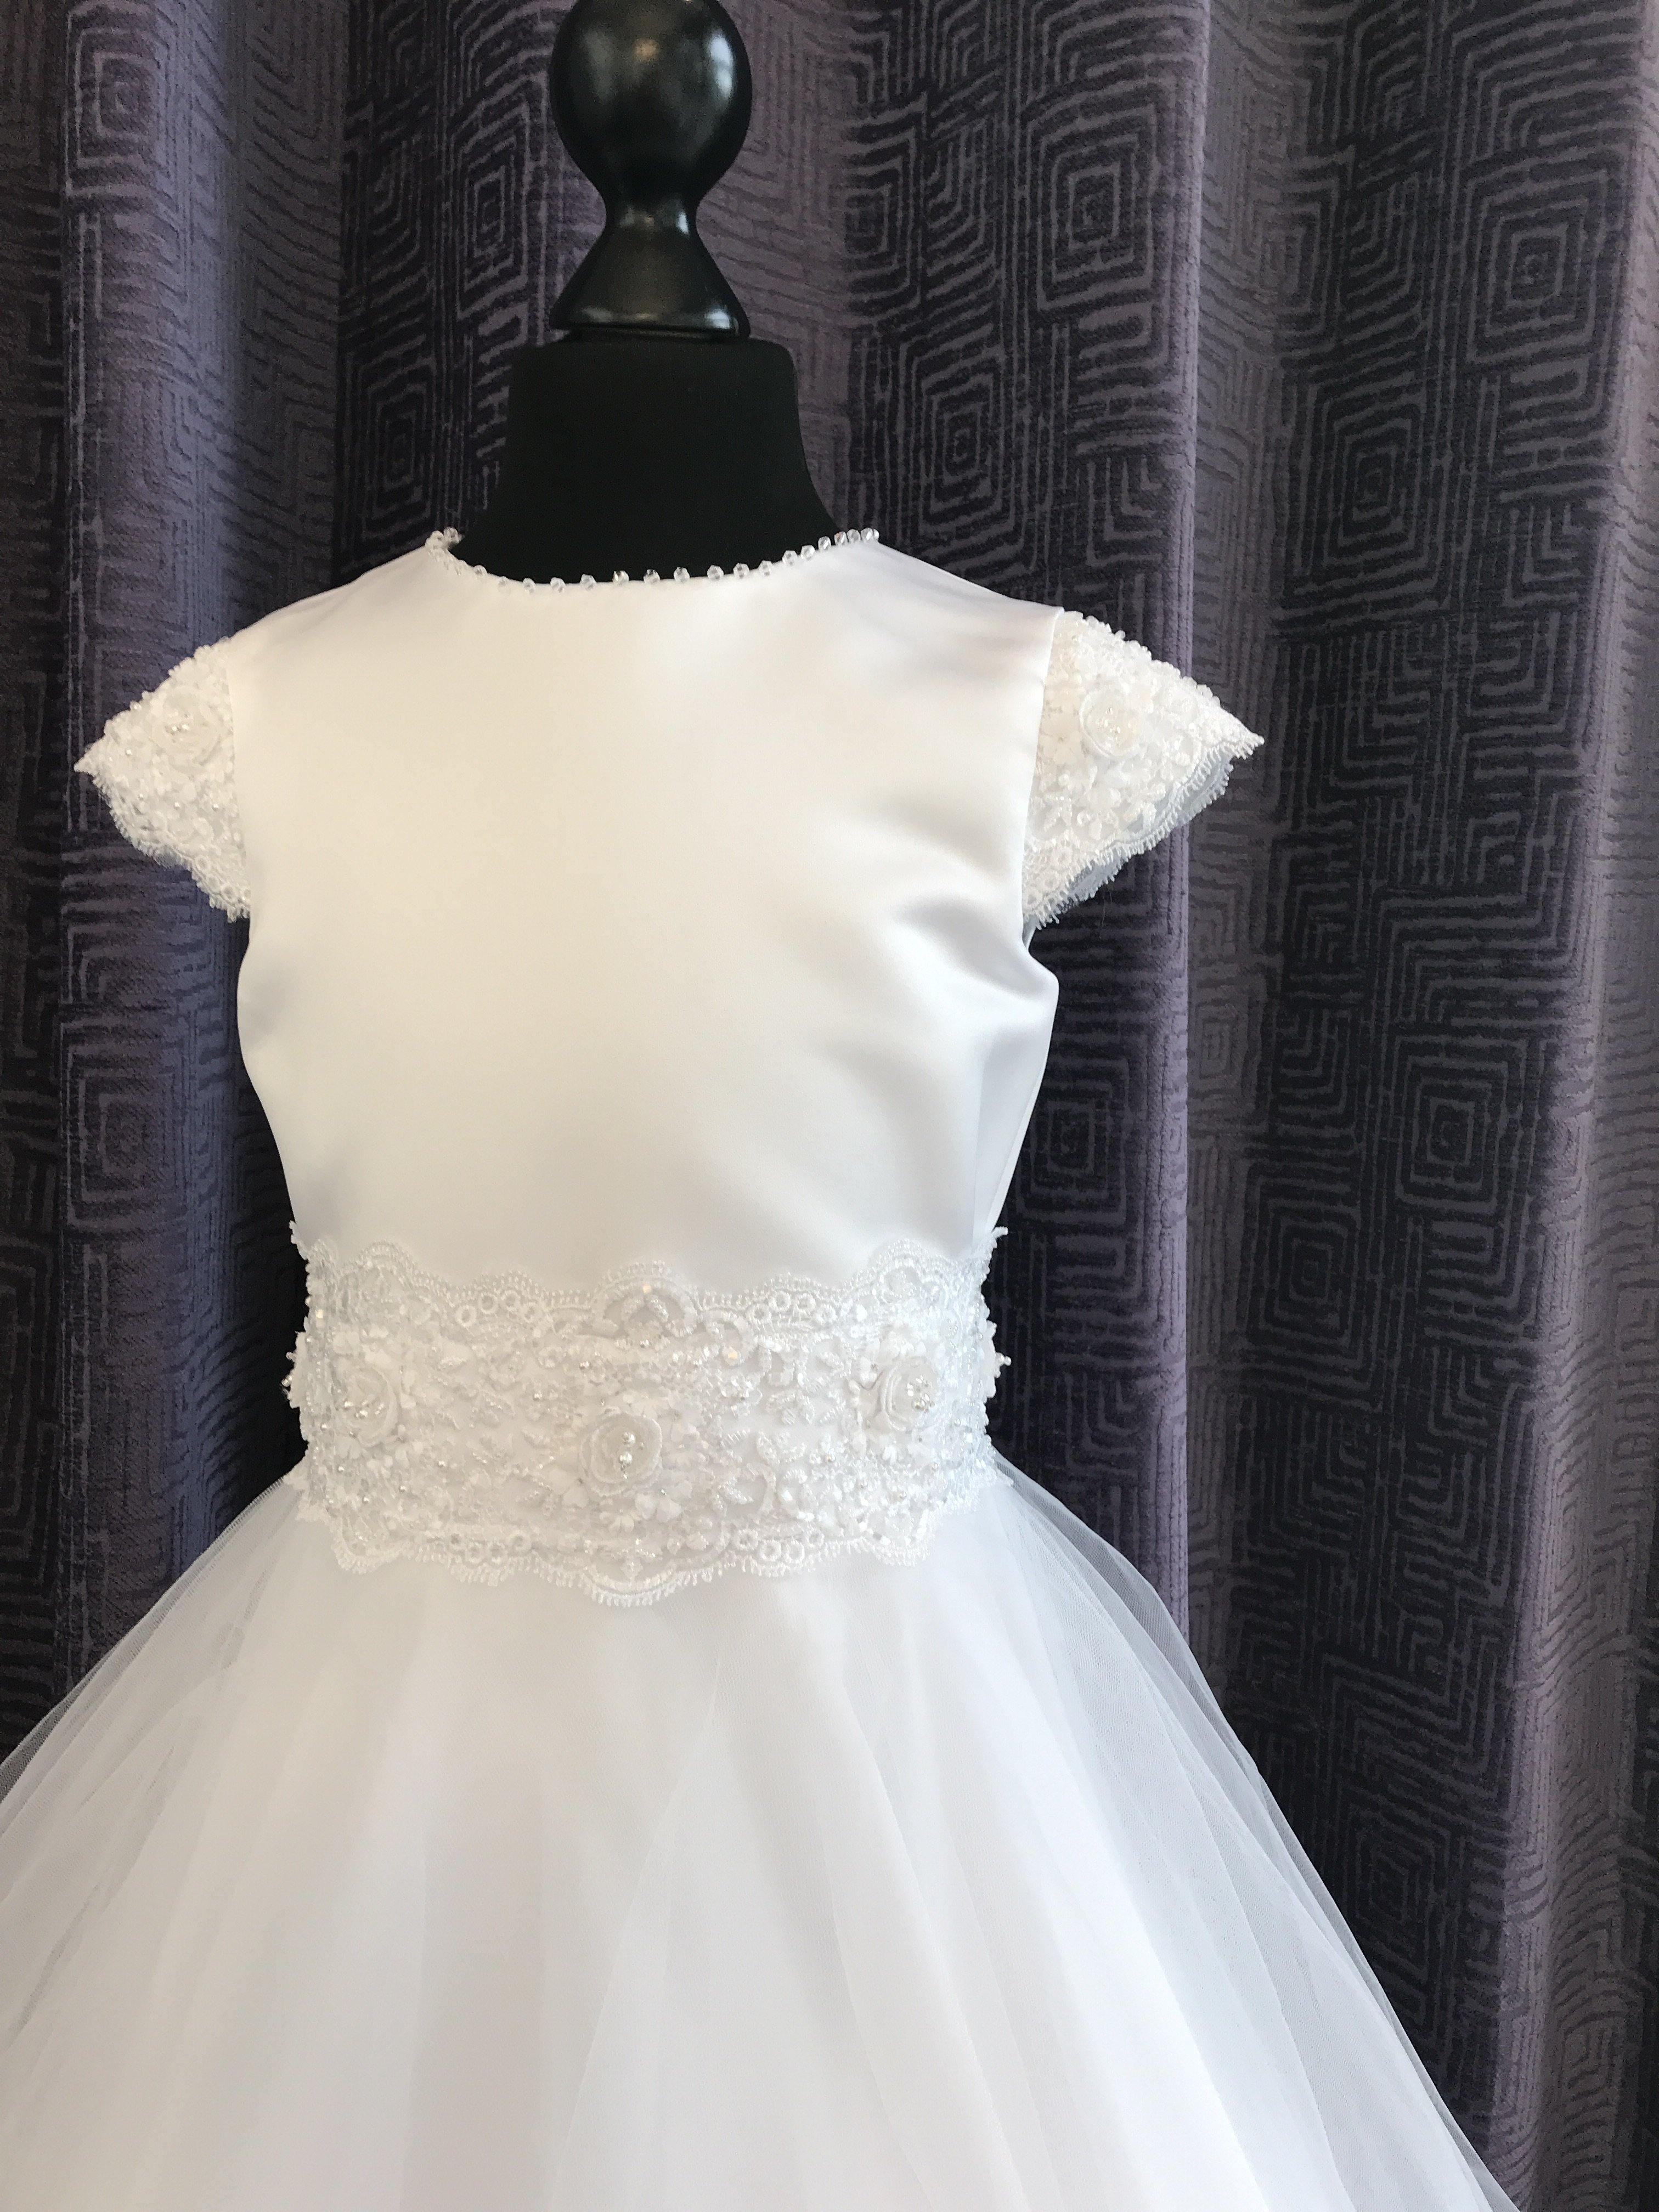 EC7095bs - Elliott Chambers    - Bridal -  Debs Dresses -  Communion dresses